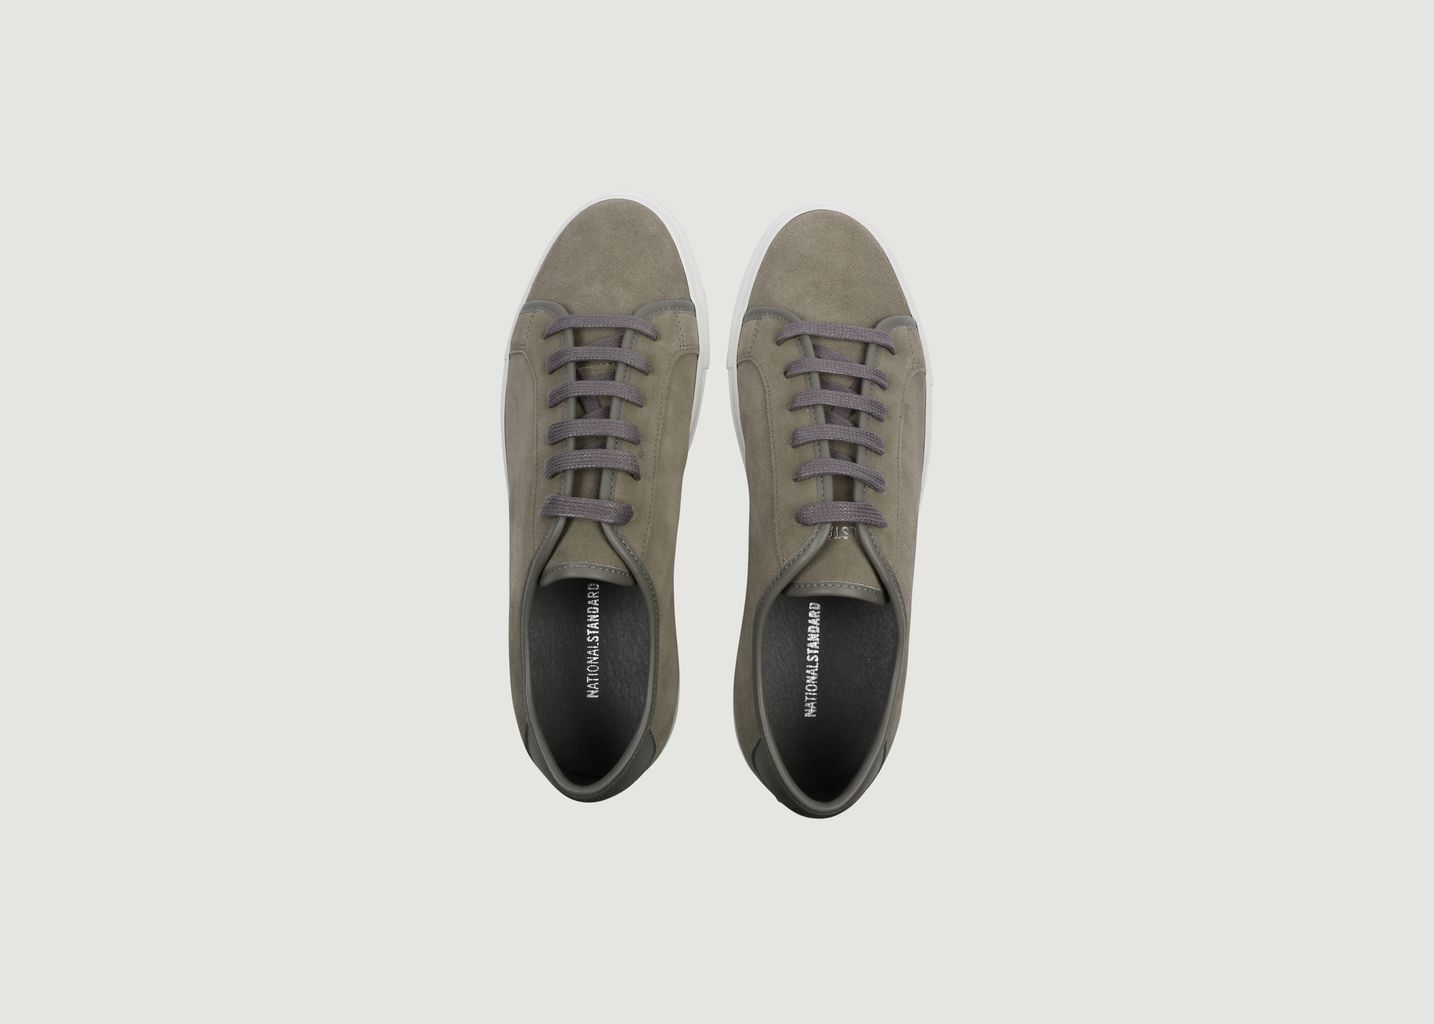 Sneakers Edition 3 Suede - National Standard